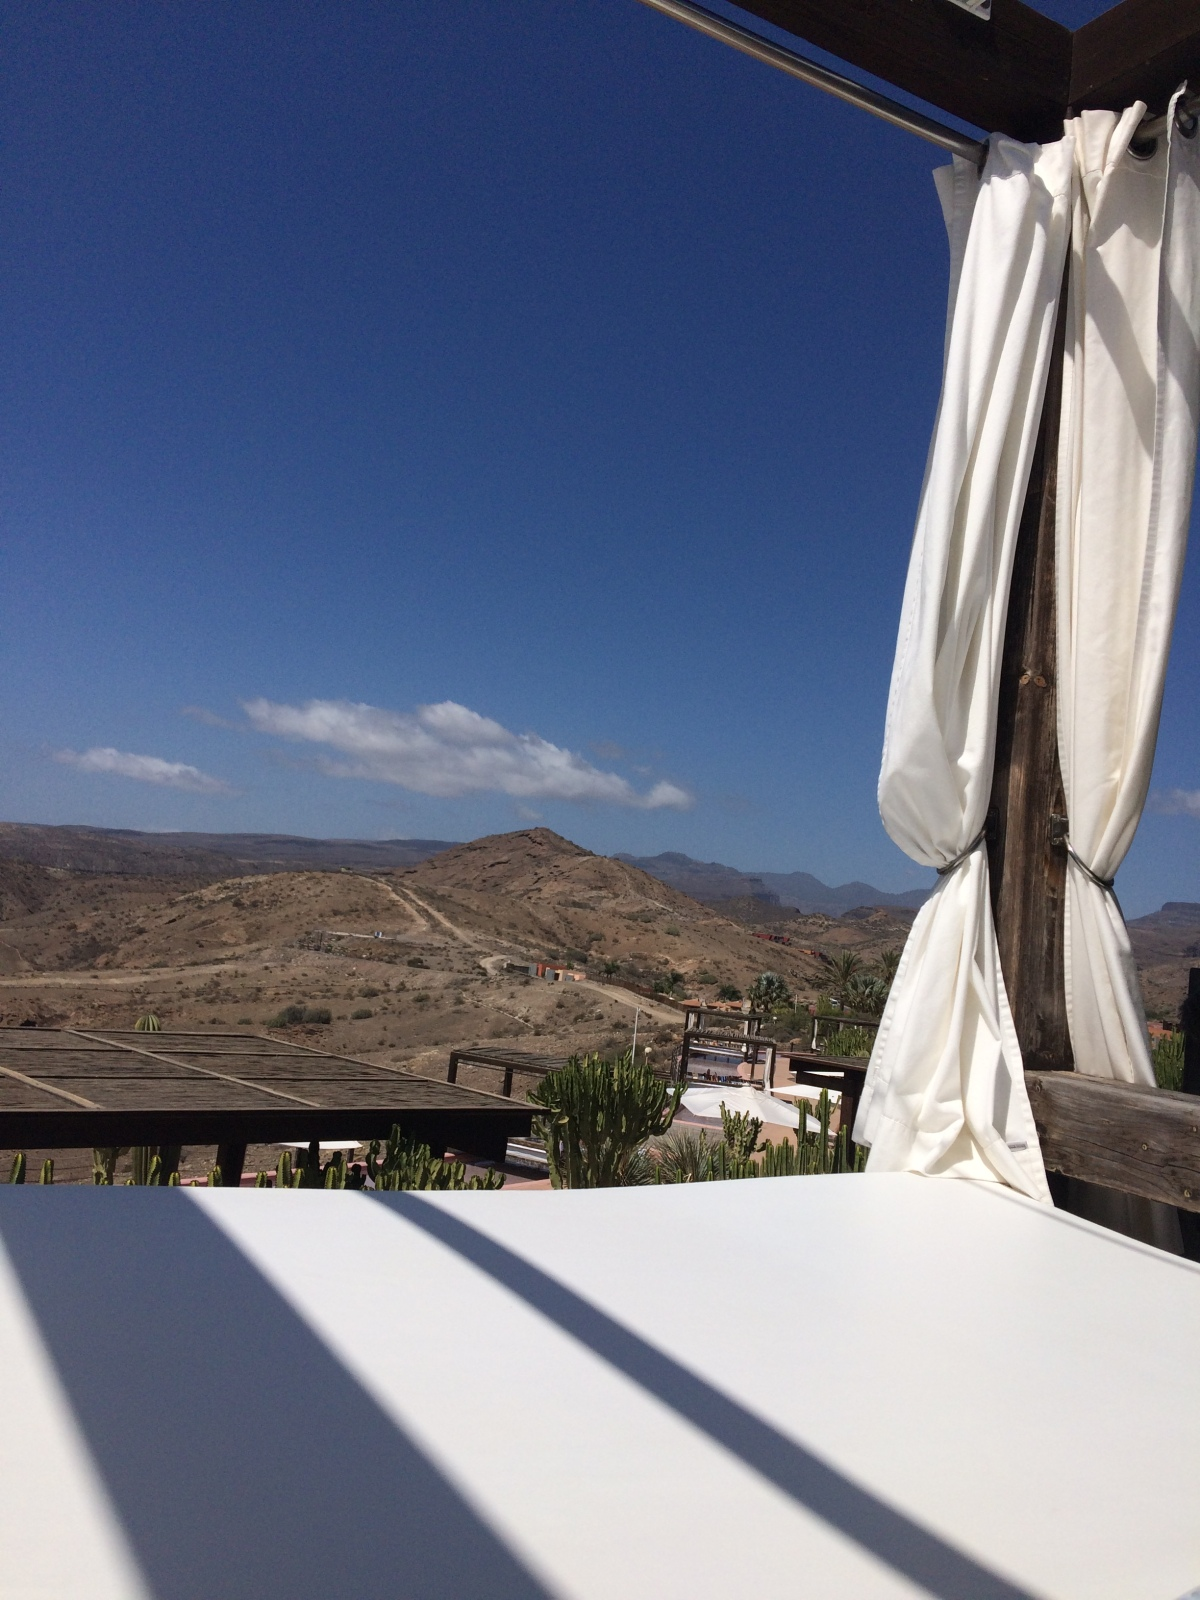 Bring me sunshine! Total relaxation in Gran Canaria